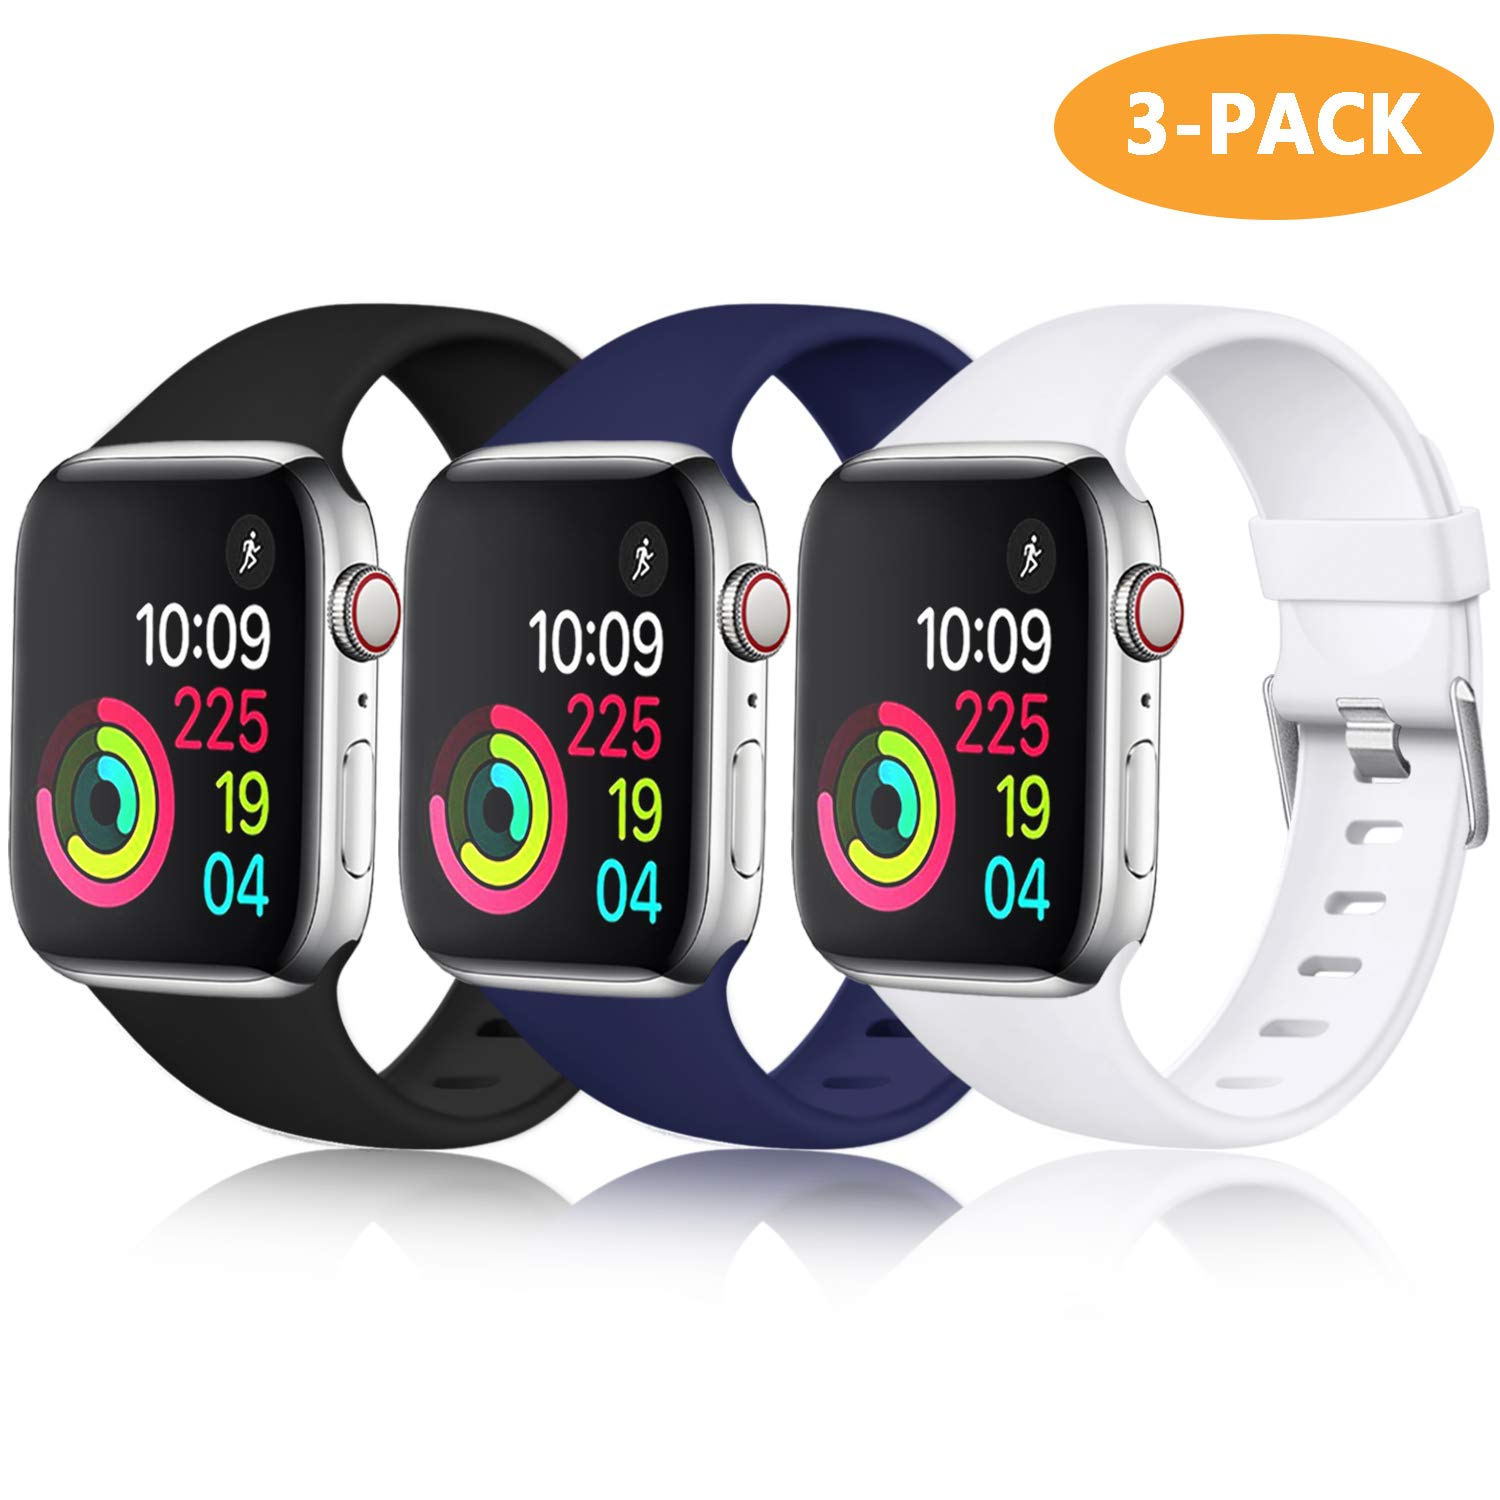 Laffav Band Compatible with Apple Watch 40mm 38mm iWatch Series 4 3 2 1 for Women Men, Black, Midnight Blue, White, 3 Pack, S/M